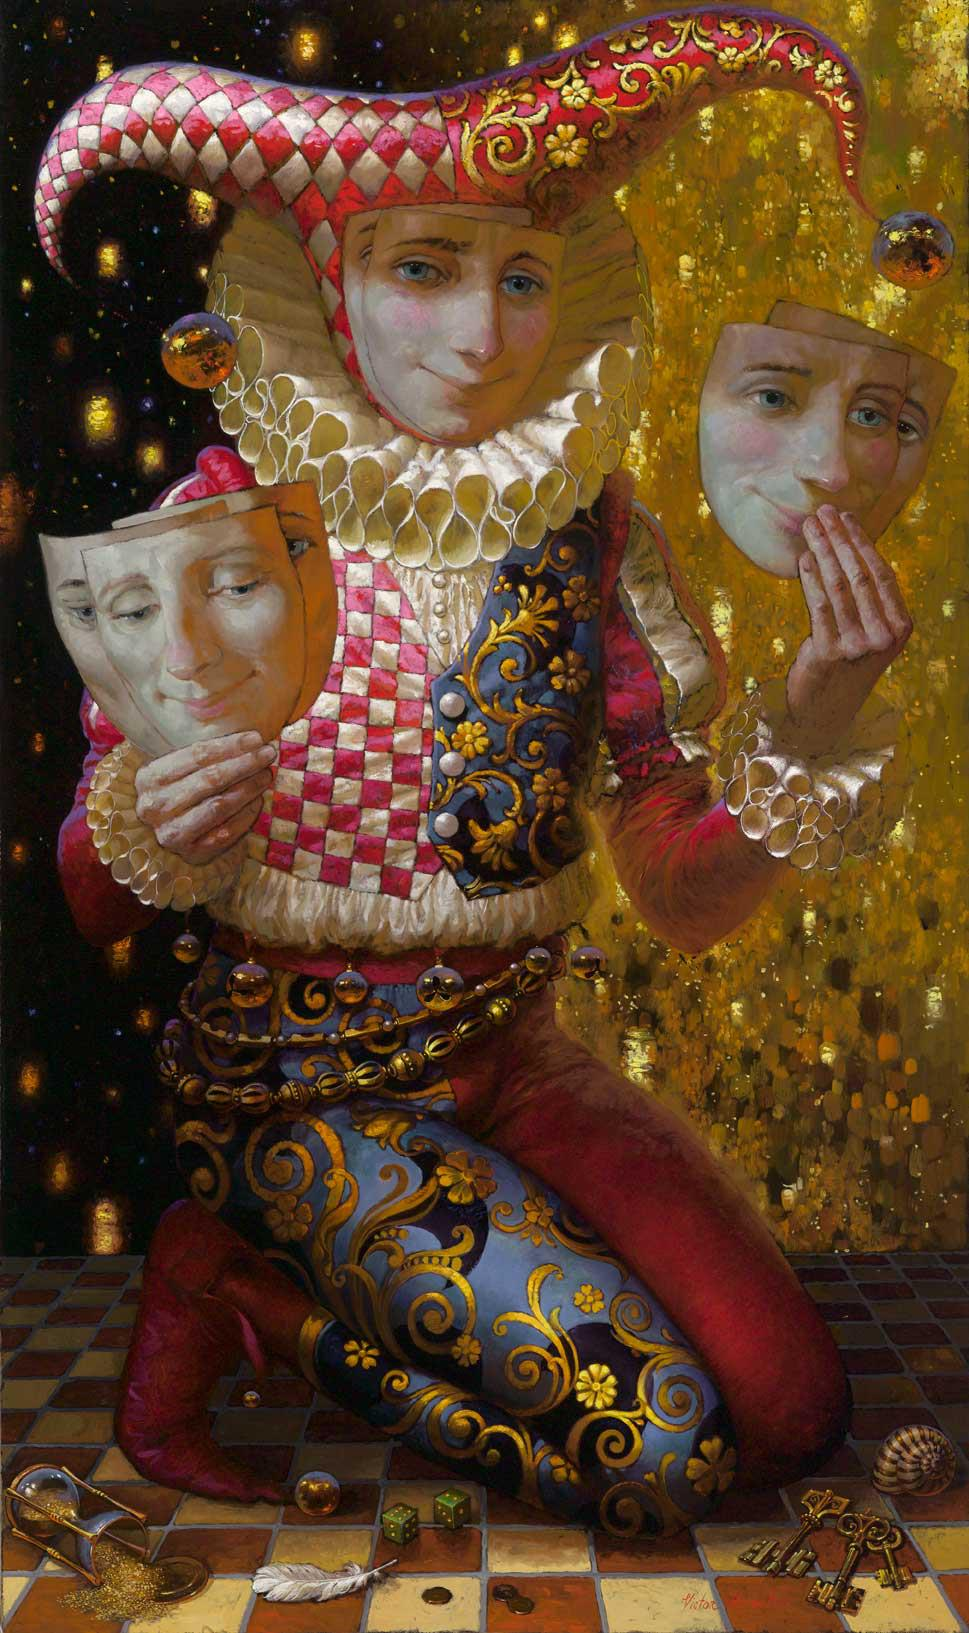 Artwork by Victor Nizovtsev